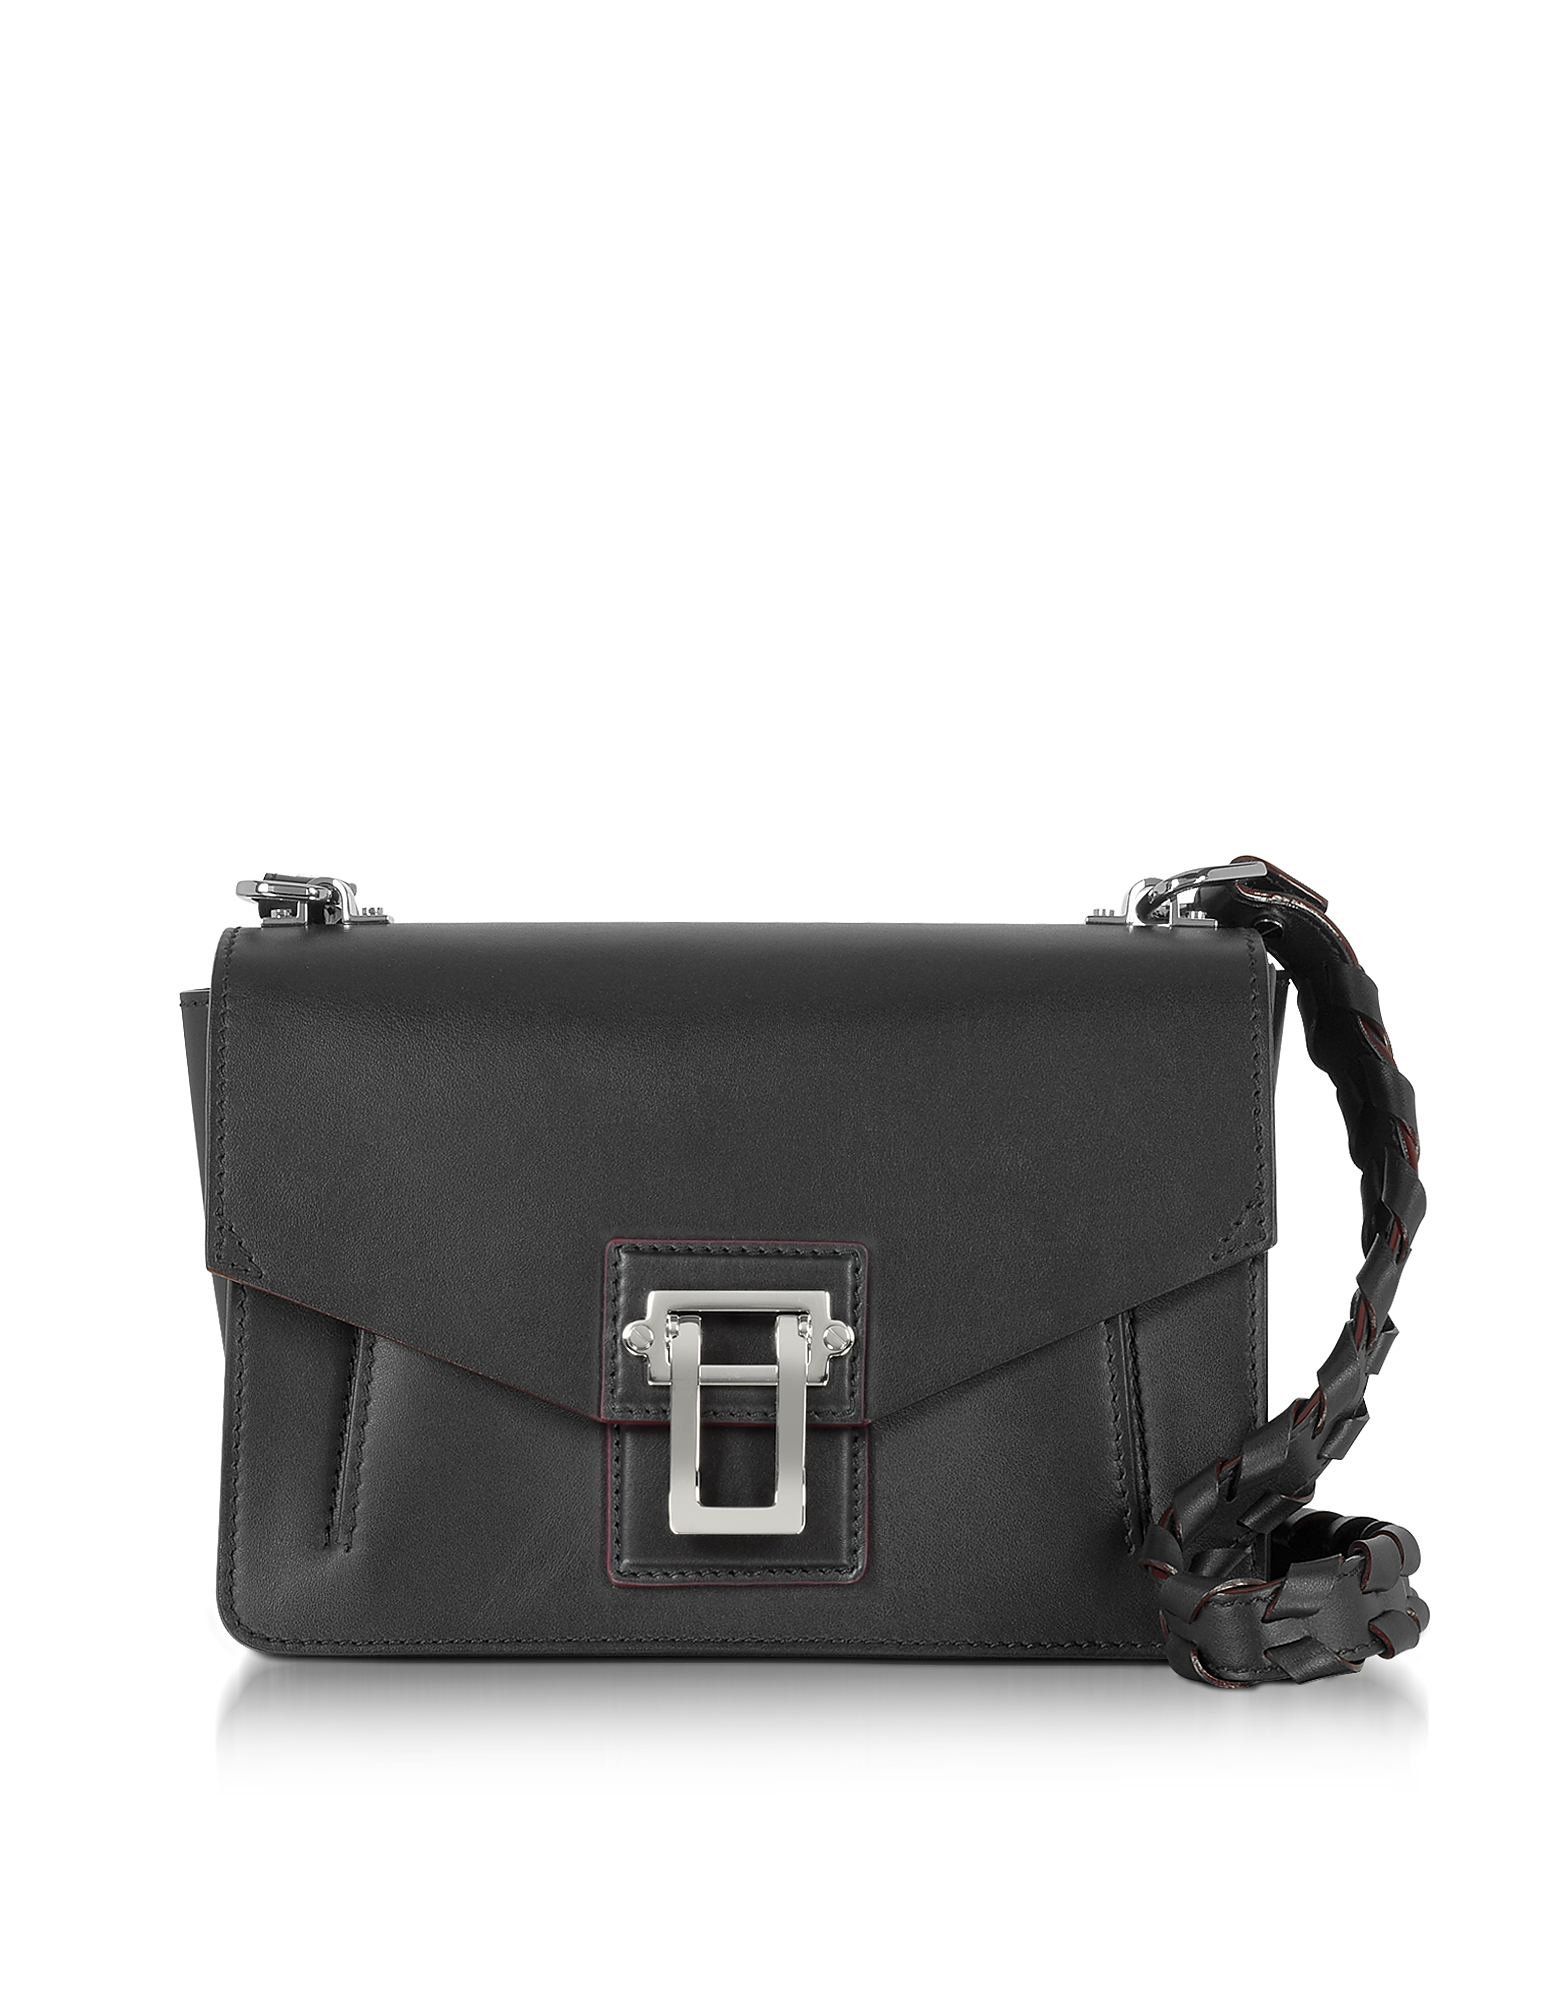 Proenza Schouler Handbags, Hava Black Smooth Leather Shoulder Bag w/Whipstitch Strap